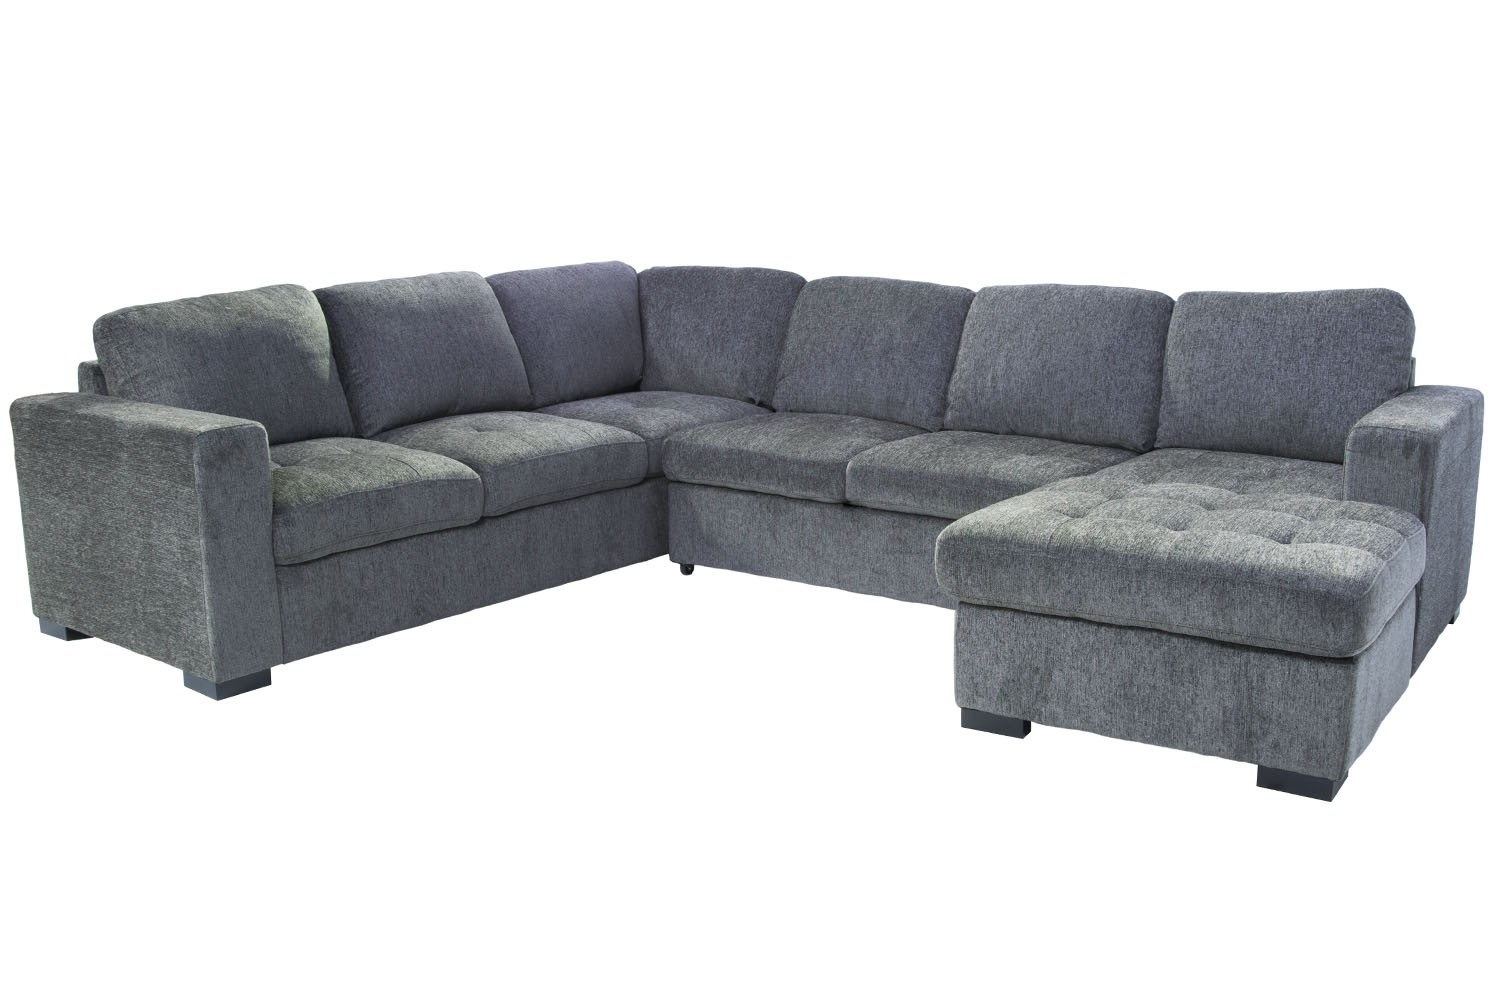 Claire 3 Piece Right Facing Chaise Sectional In Gray | Save Mor With Aquarius Light Grey 2 Piece Sectionals With Laf Chaise (View 22 of 30)